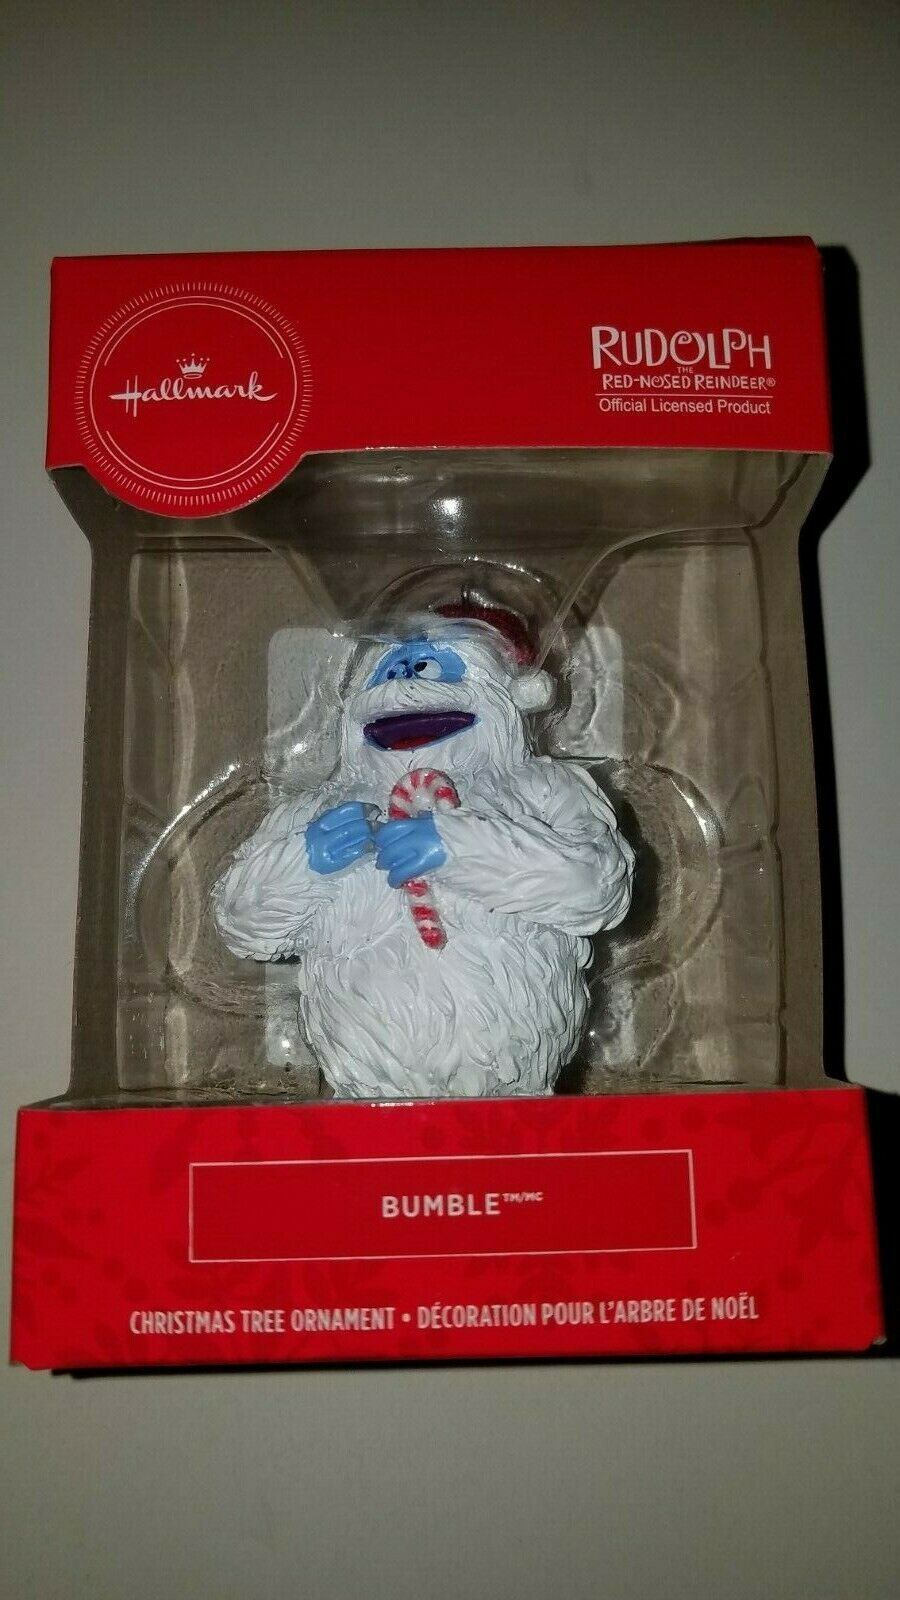 Primary image for hallmark ornament bumble from rudolph the red nosed reindeer new in box